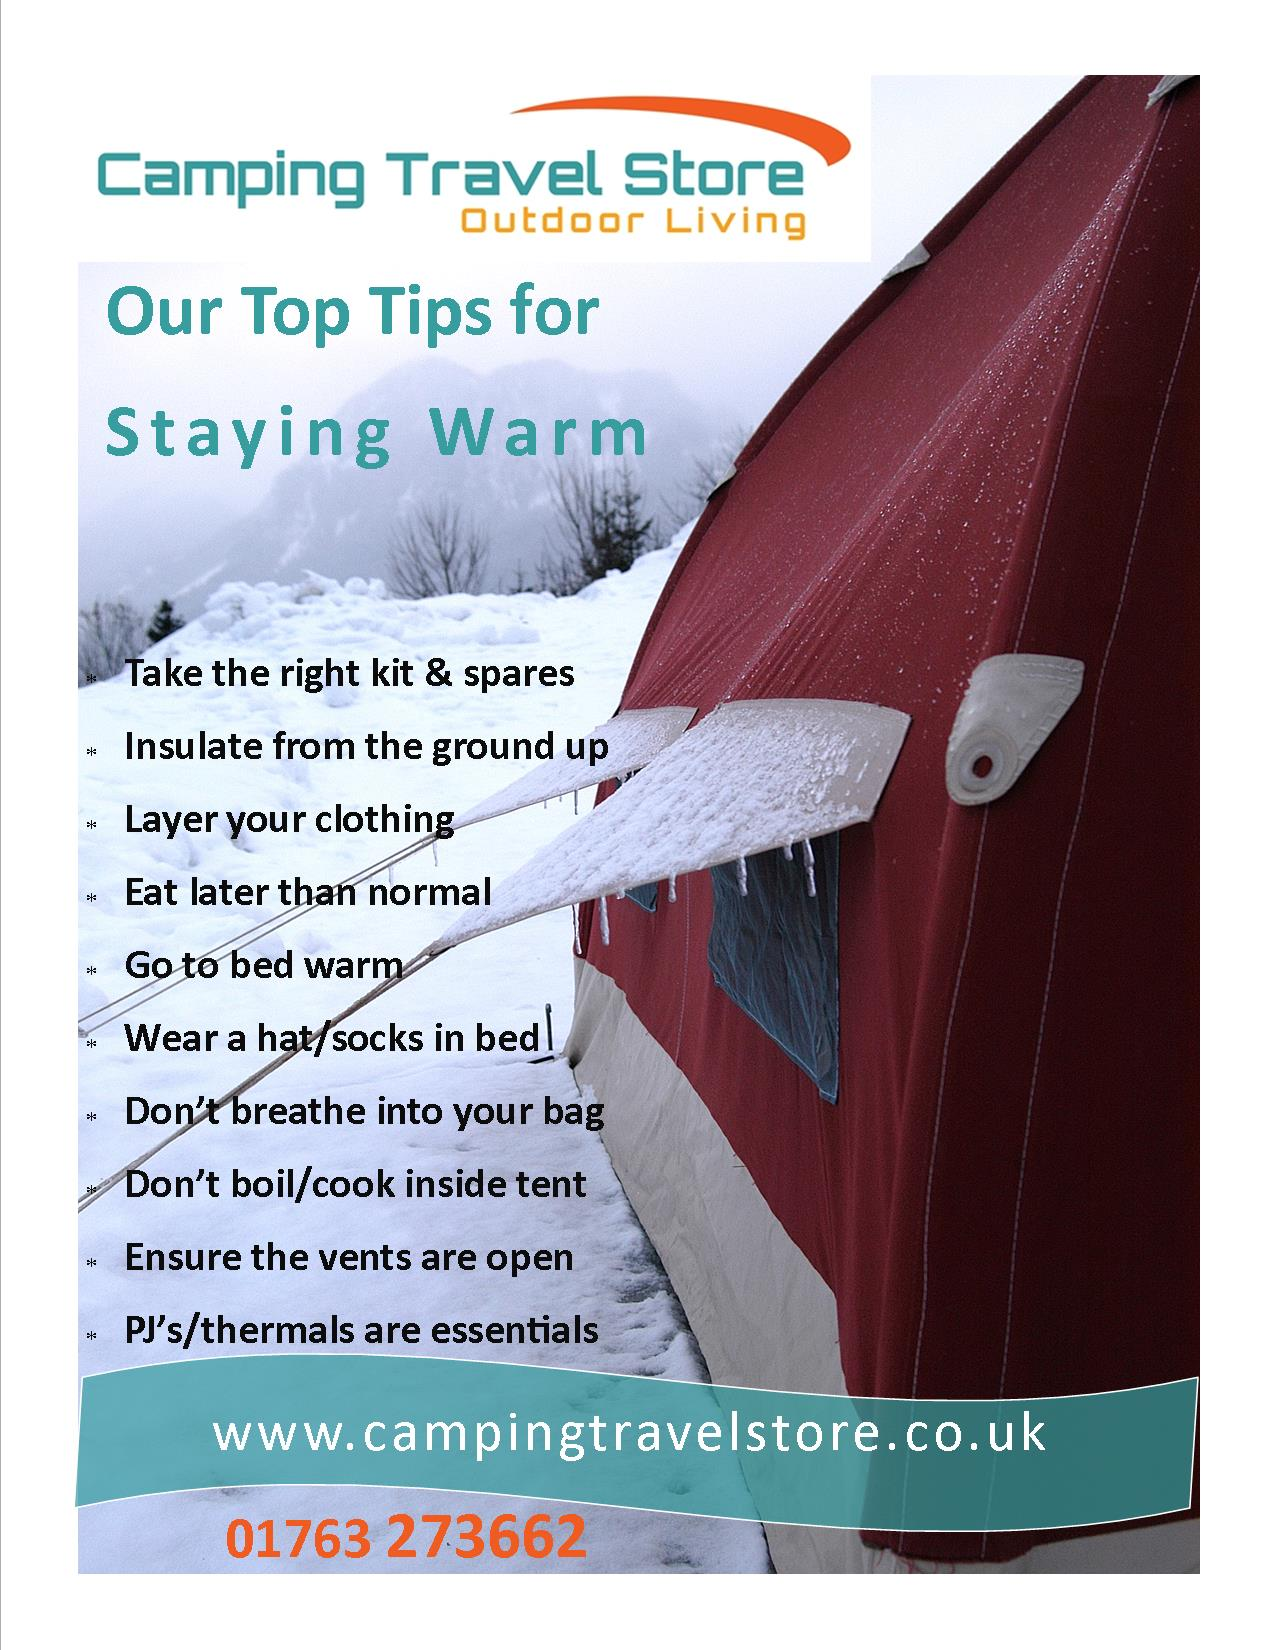 Top tips for staying warm